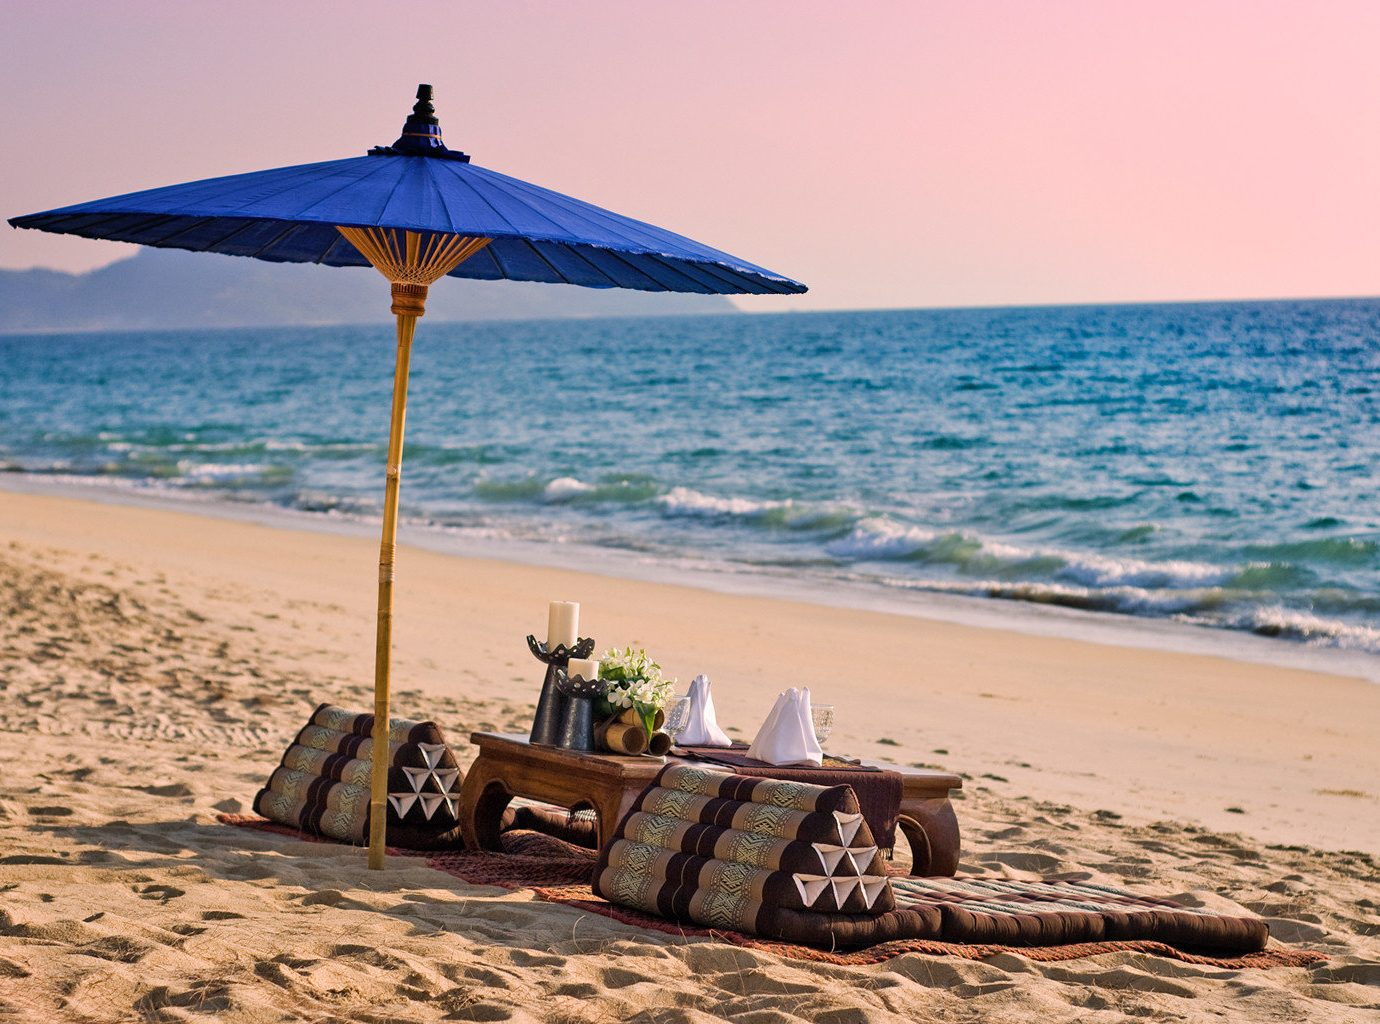 Hotels outdoor sky water Beach body of water Sea natural environment shore vacation Ocean sand Coast vehicle travel set sandy